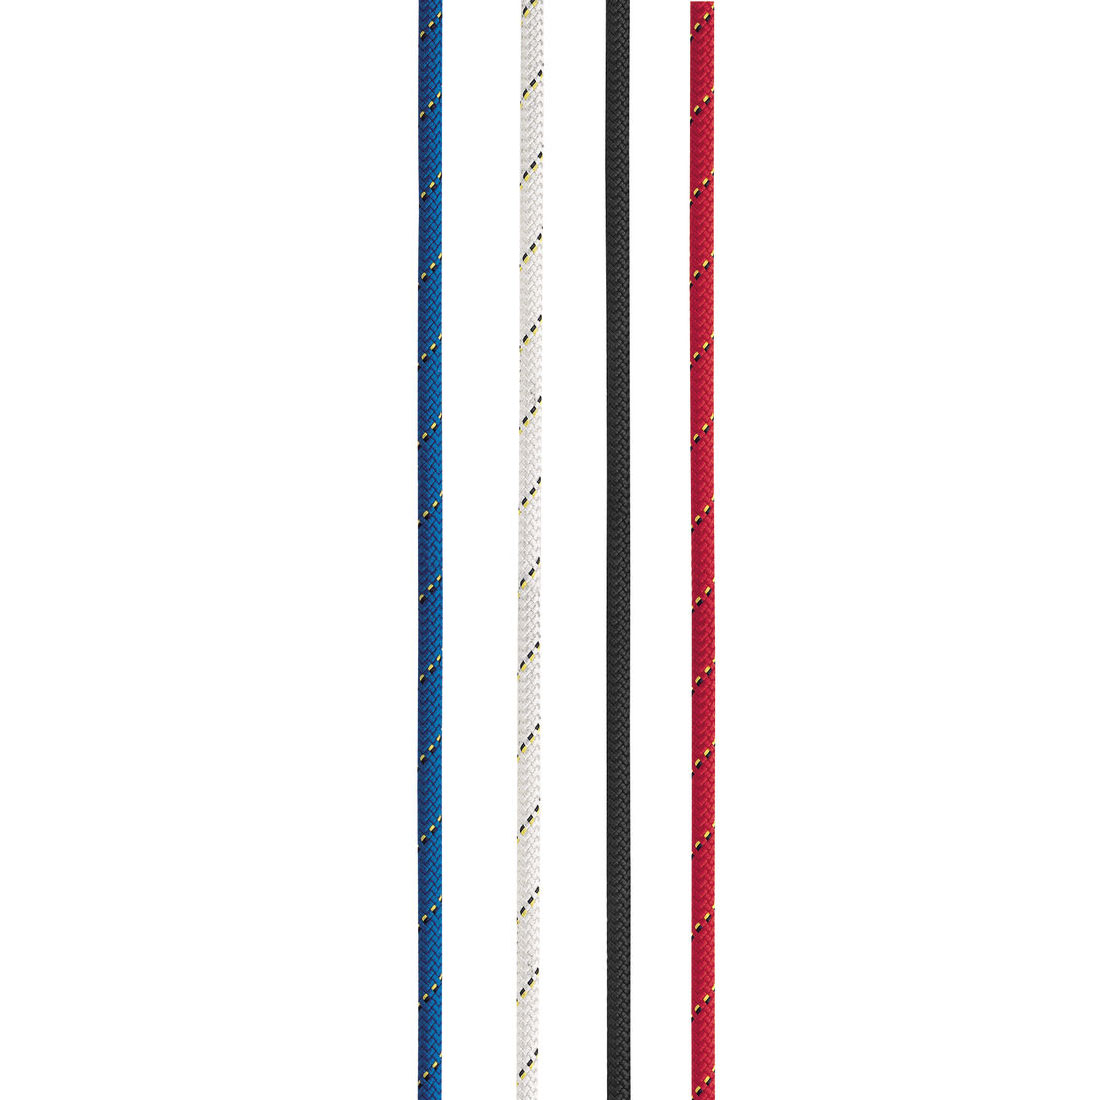 VECTOR rope, NFPA, 11mm x 46m (150ft)